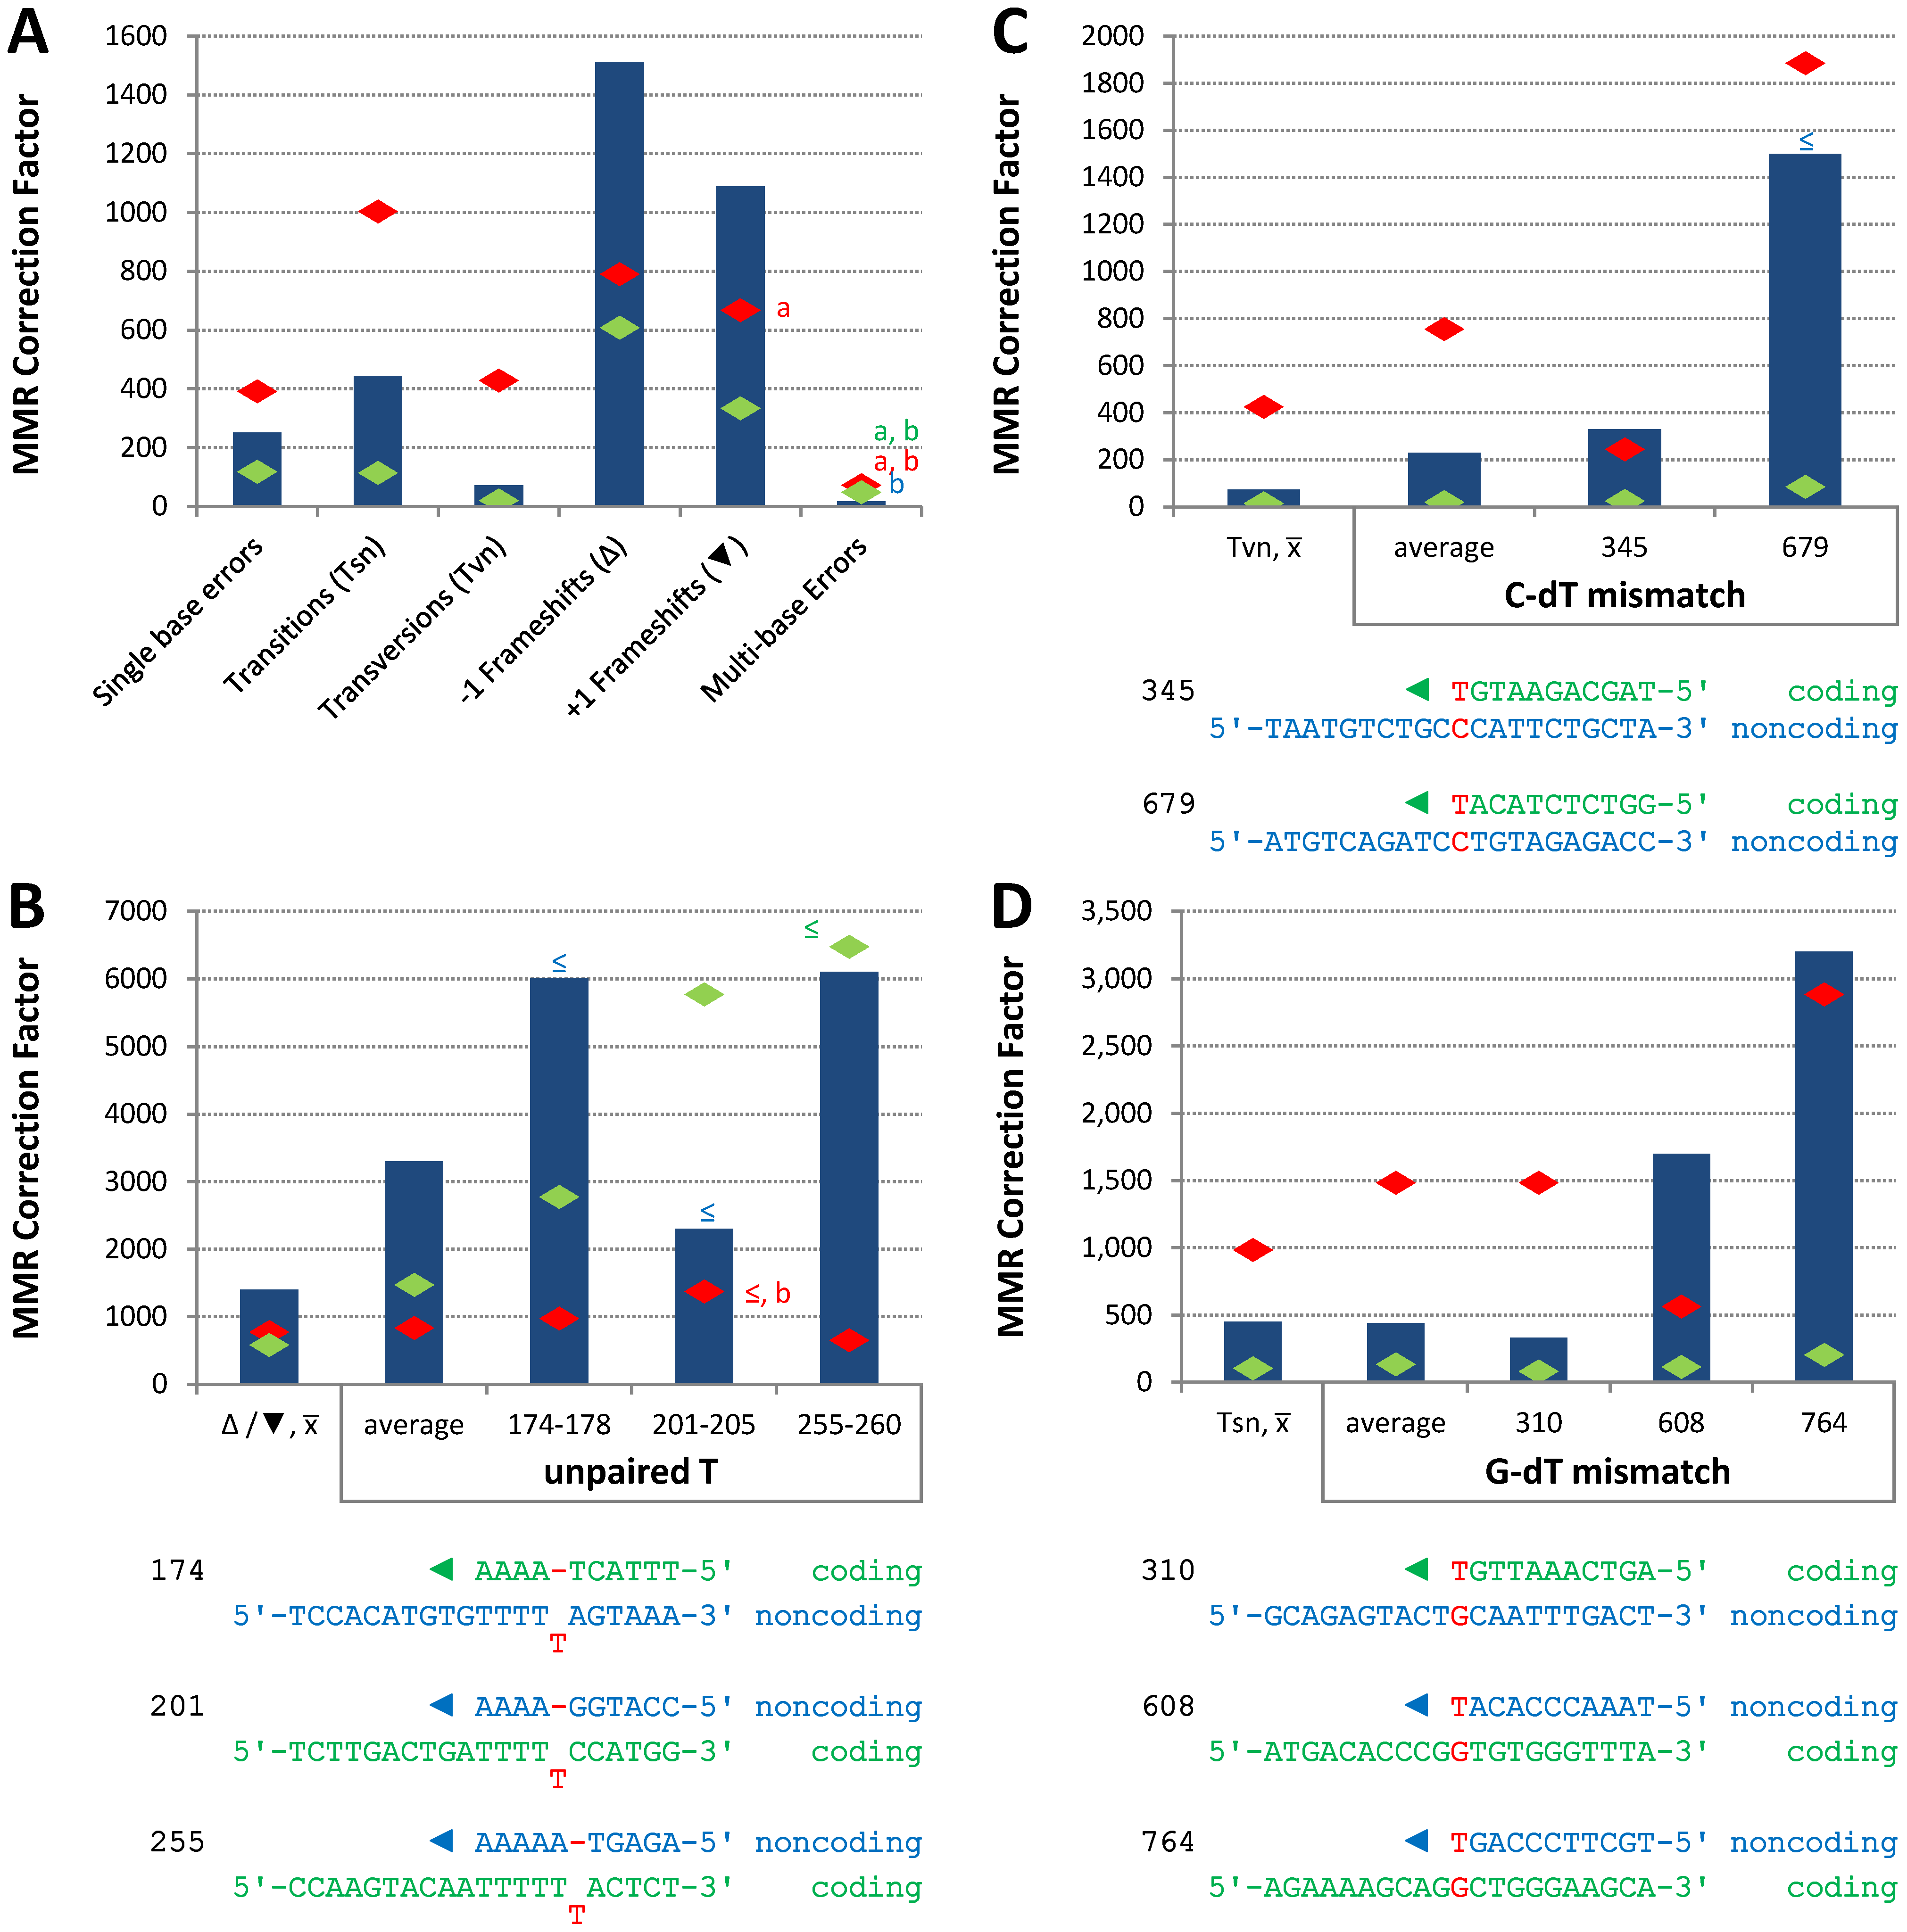 Correction factors for various mismatches made by each mutator polymerases.